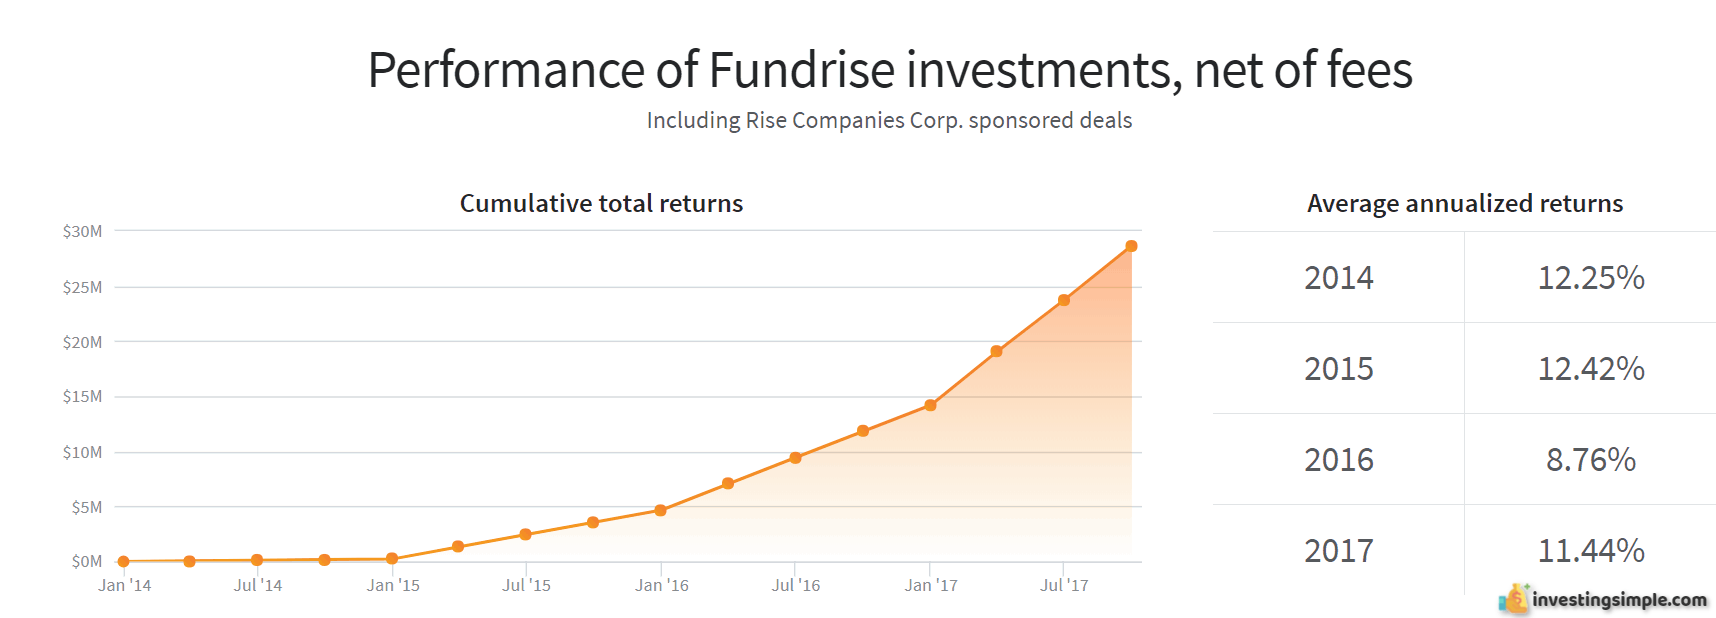 Historical performance of the Fundrise investing platform.